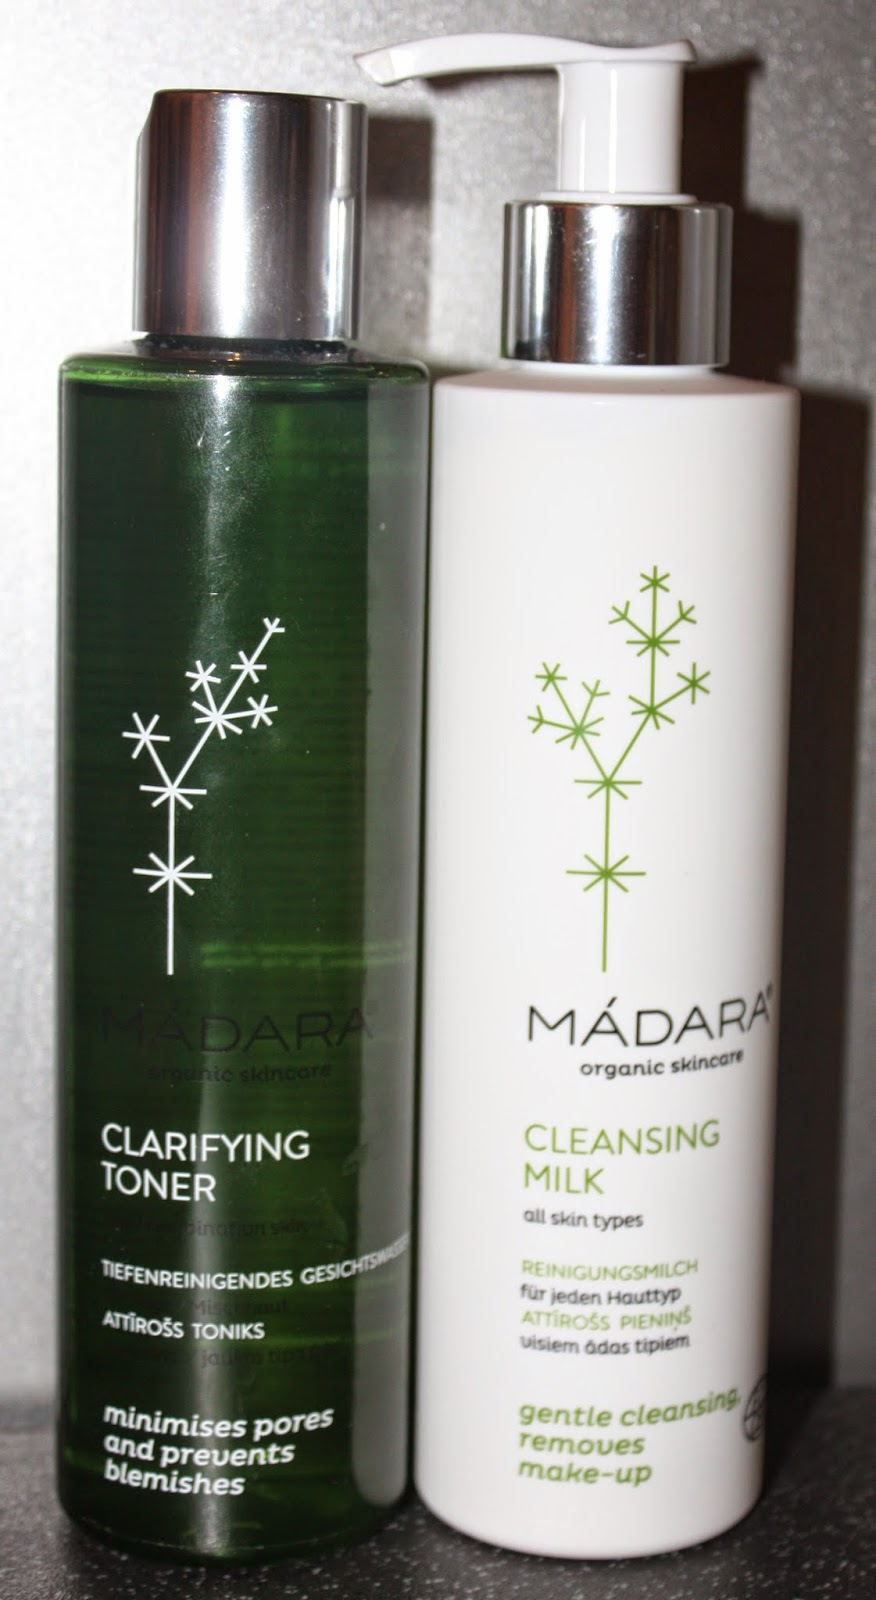 Madara Clarifying Toner and Madara Cleansing Milk